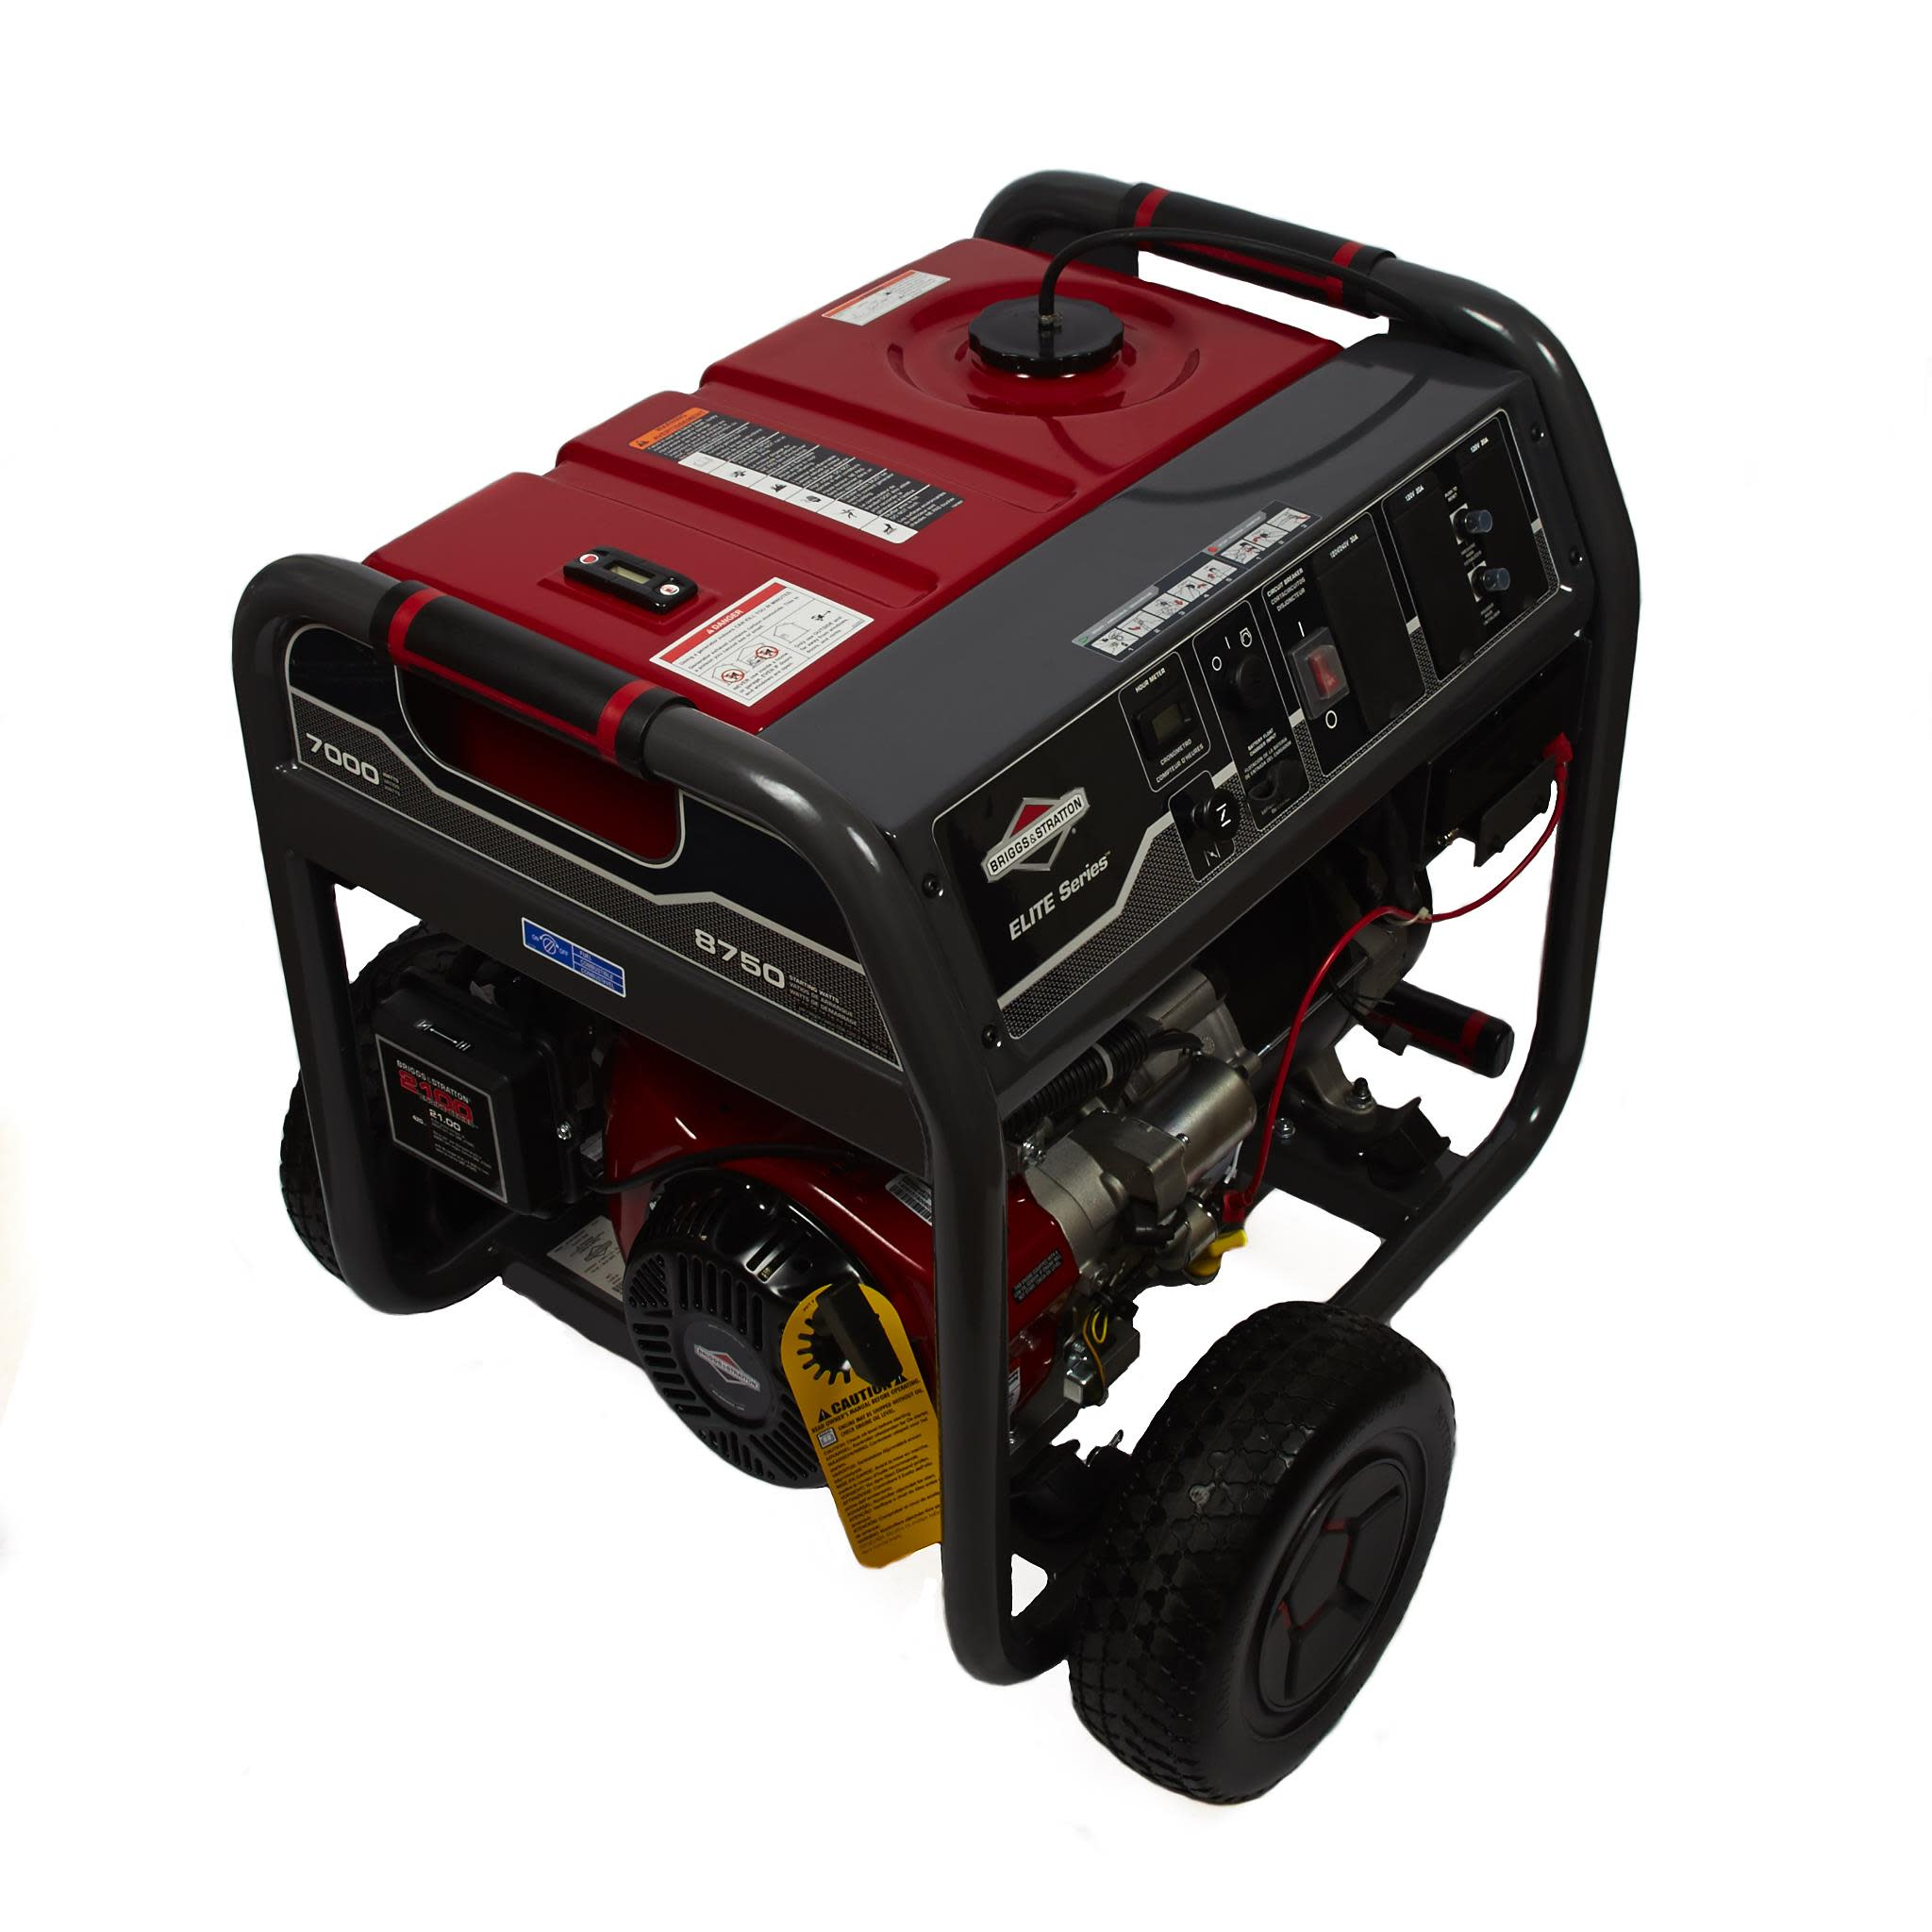 Briggs and Stratton Briggs & Stratton Portable Generator (7,000 Watt)